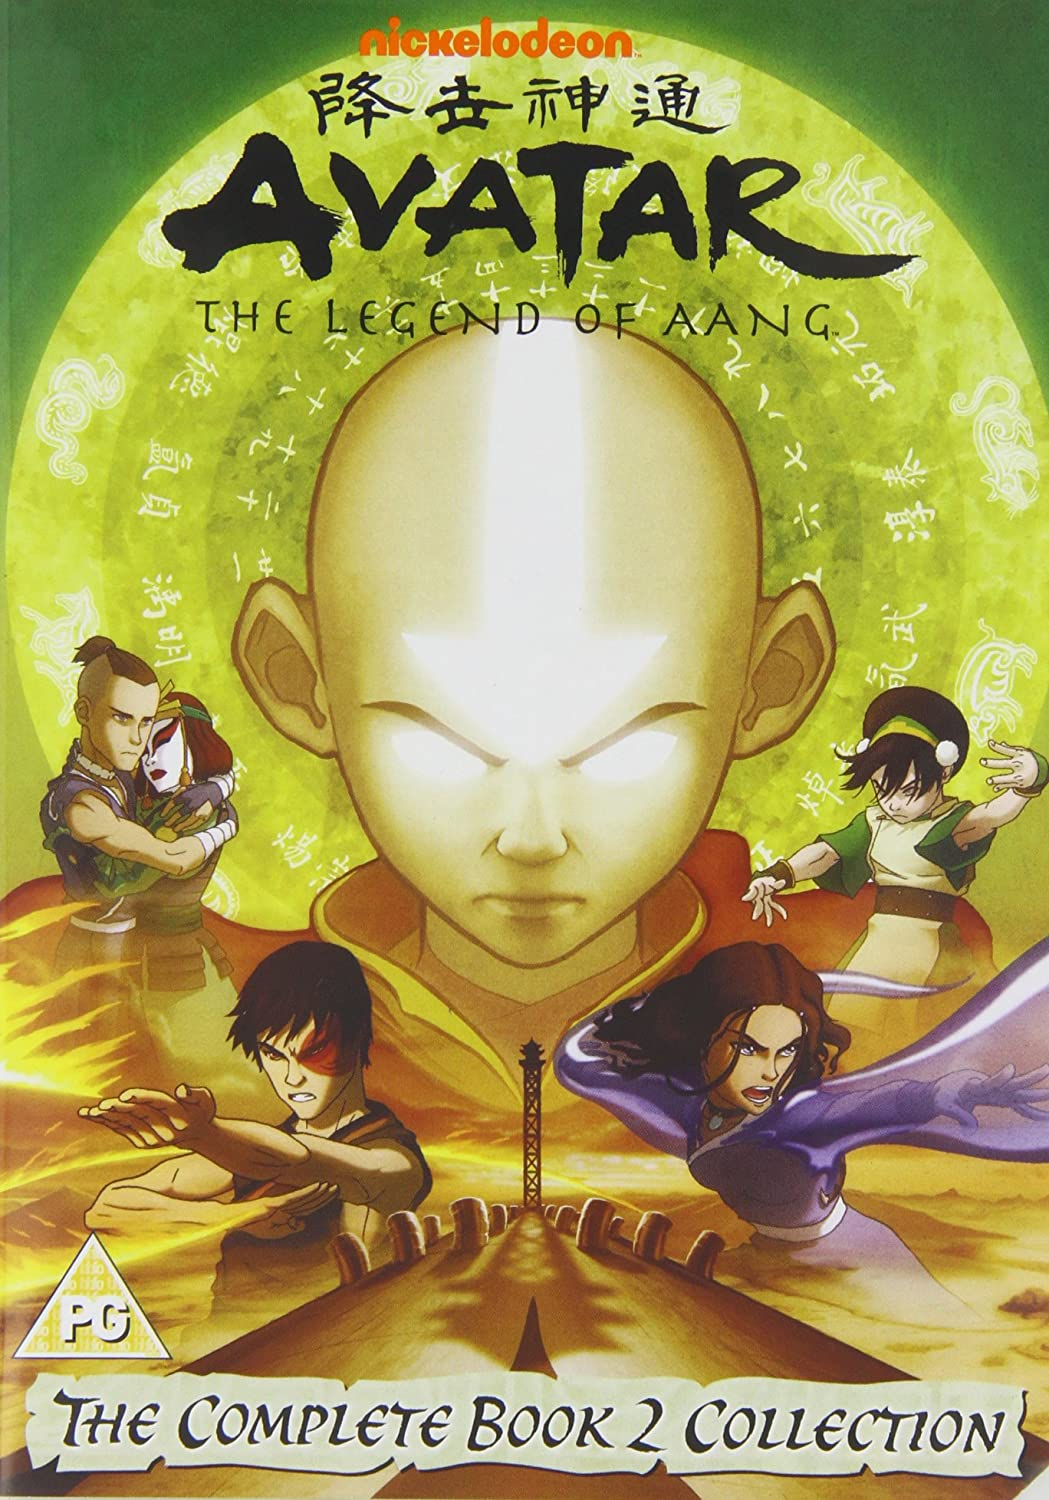 Video The Last Air Bender Book 2 3gp